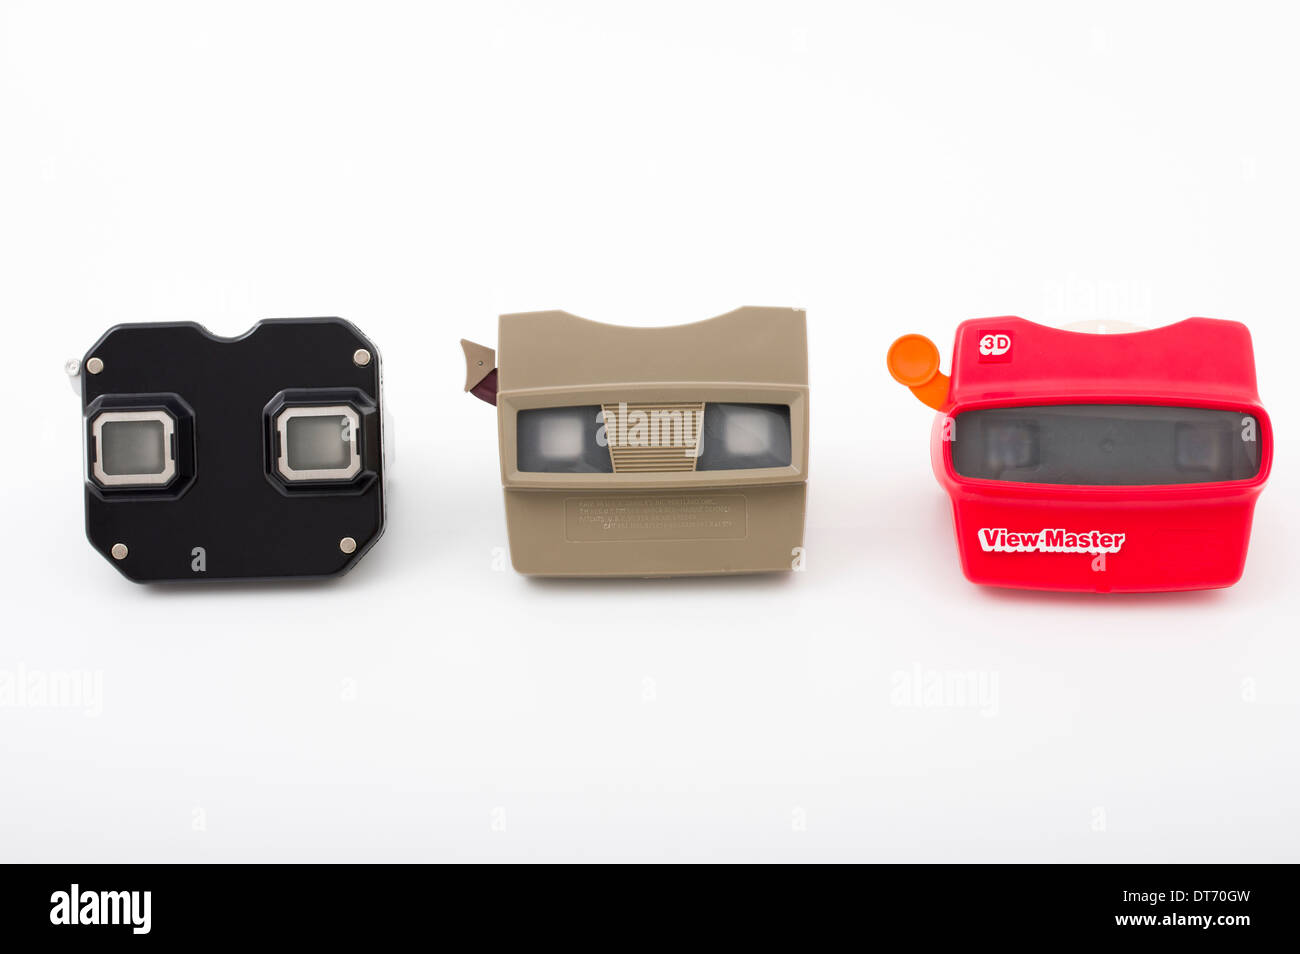 View-Master stereoscopic 3-D viewer toy early models by Sawyer later Fisher-Price - Stock Image